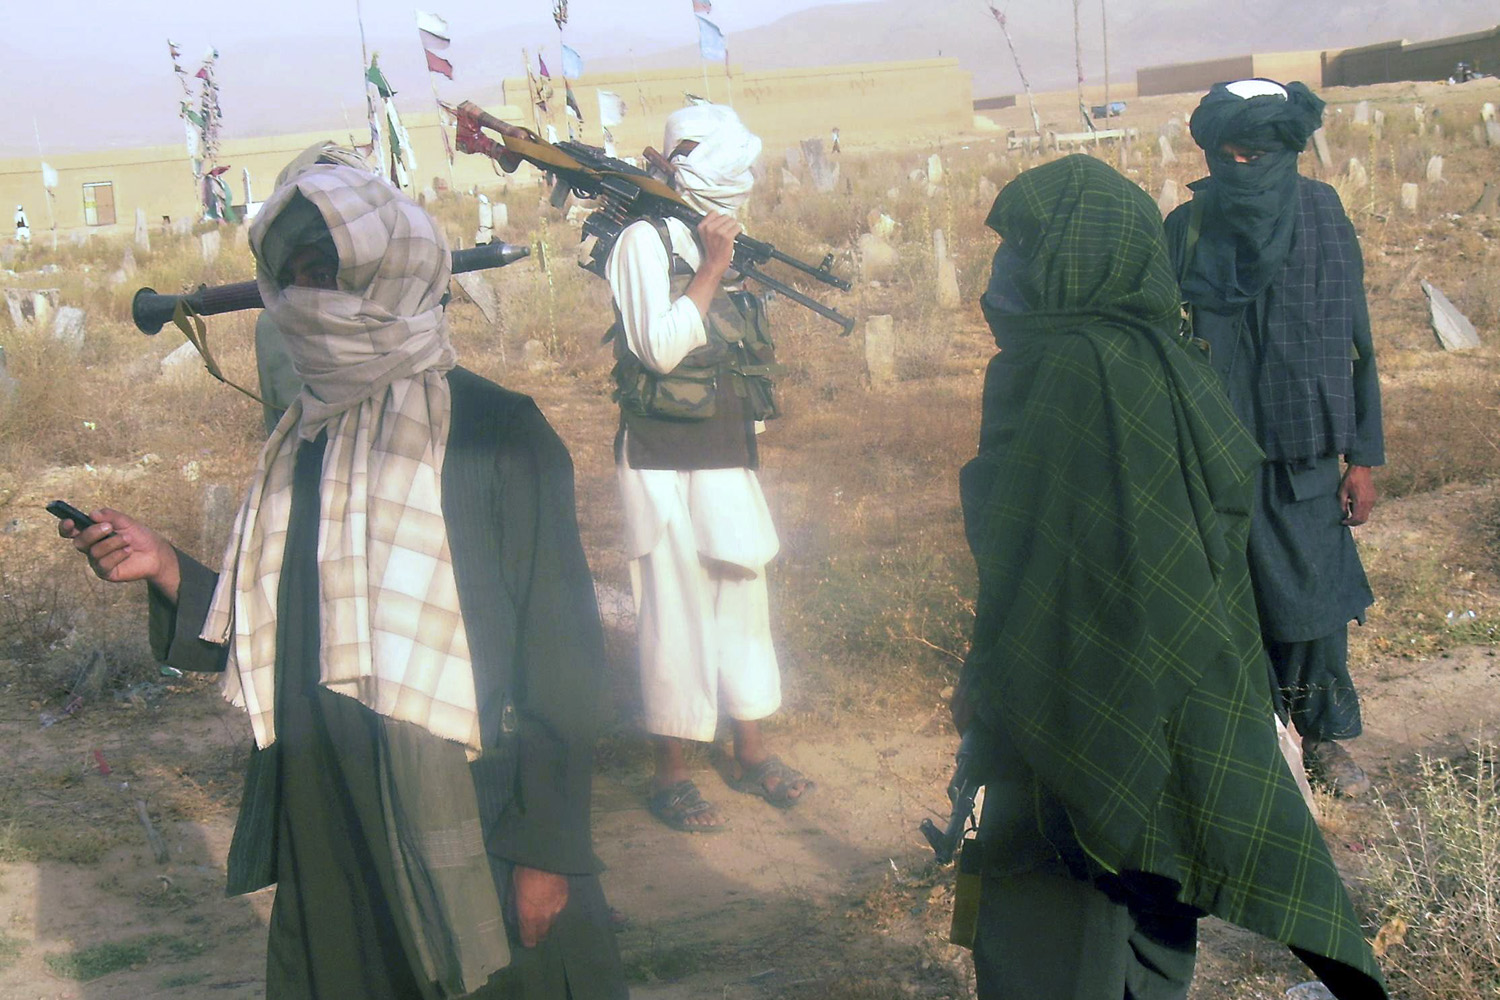 August 10, 2011. Fighters with Afghanistan's Taliban militia stand at a cemetery located west of Kabul, near the site where a CH-47 Chinook helicopter carrying US troops crashed, killing 38 personnel including 30 U.S. soldiers.